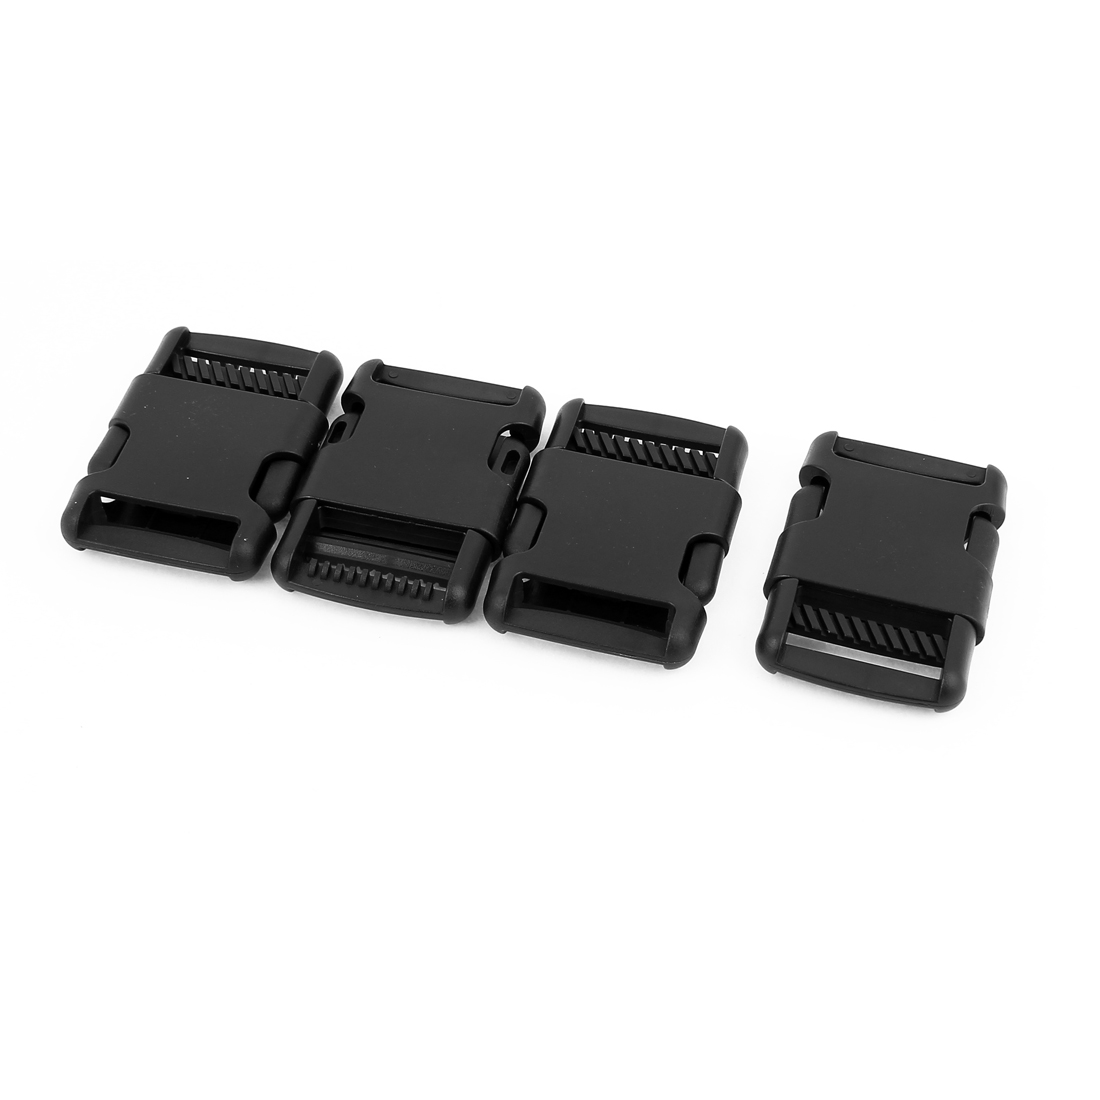 4pcs Black Plastic Luggage Clasp Side Quick Release Buckles Clip for 32mm Webbing Band